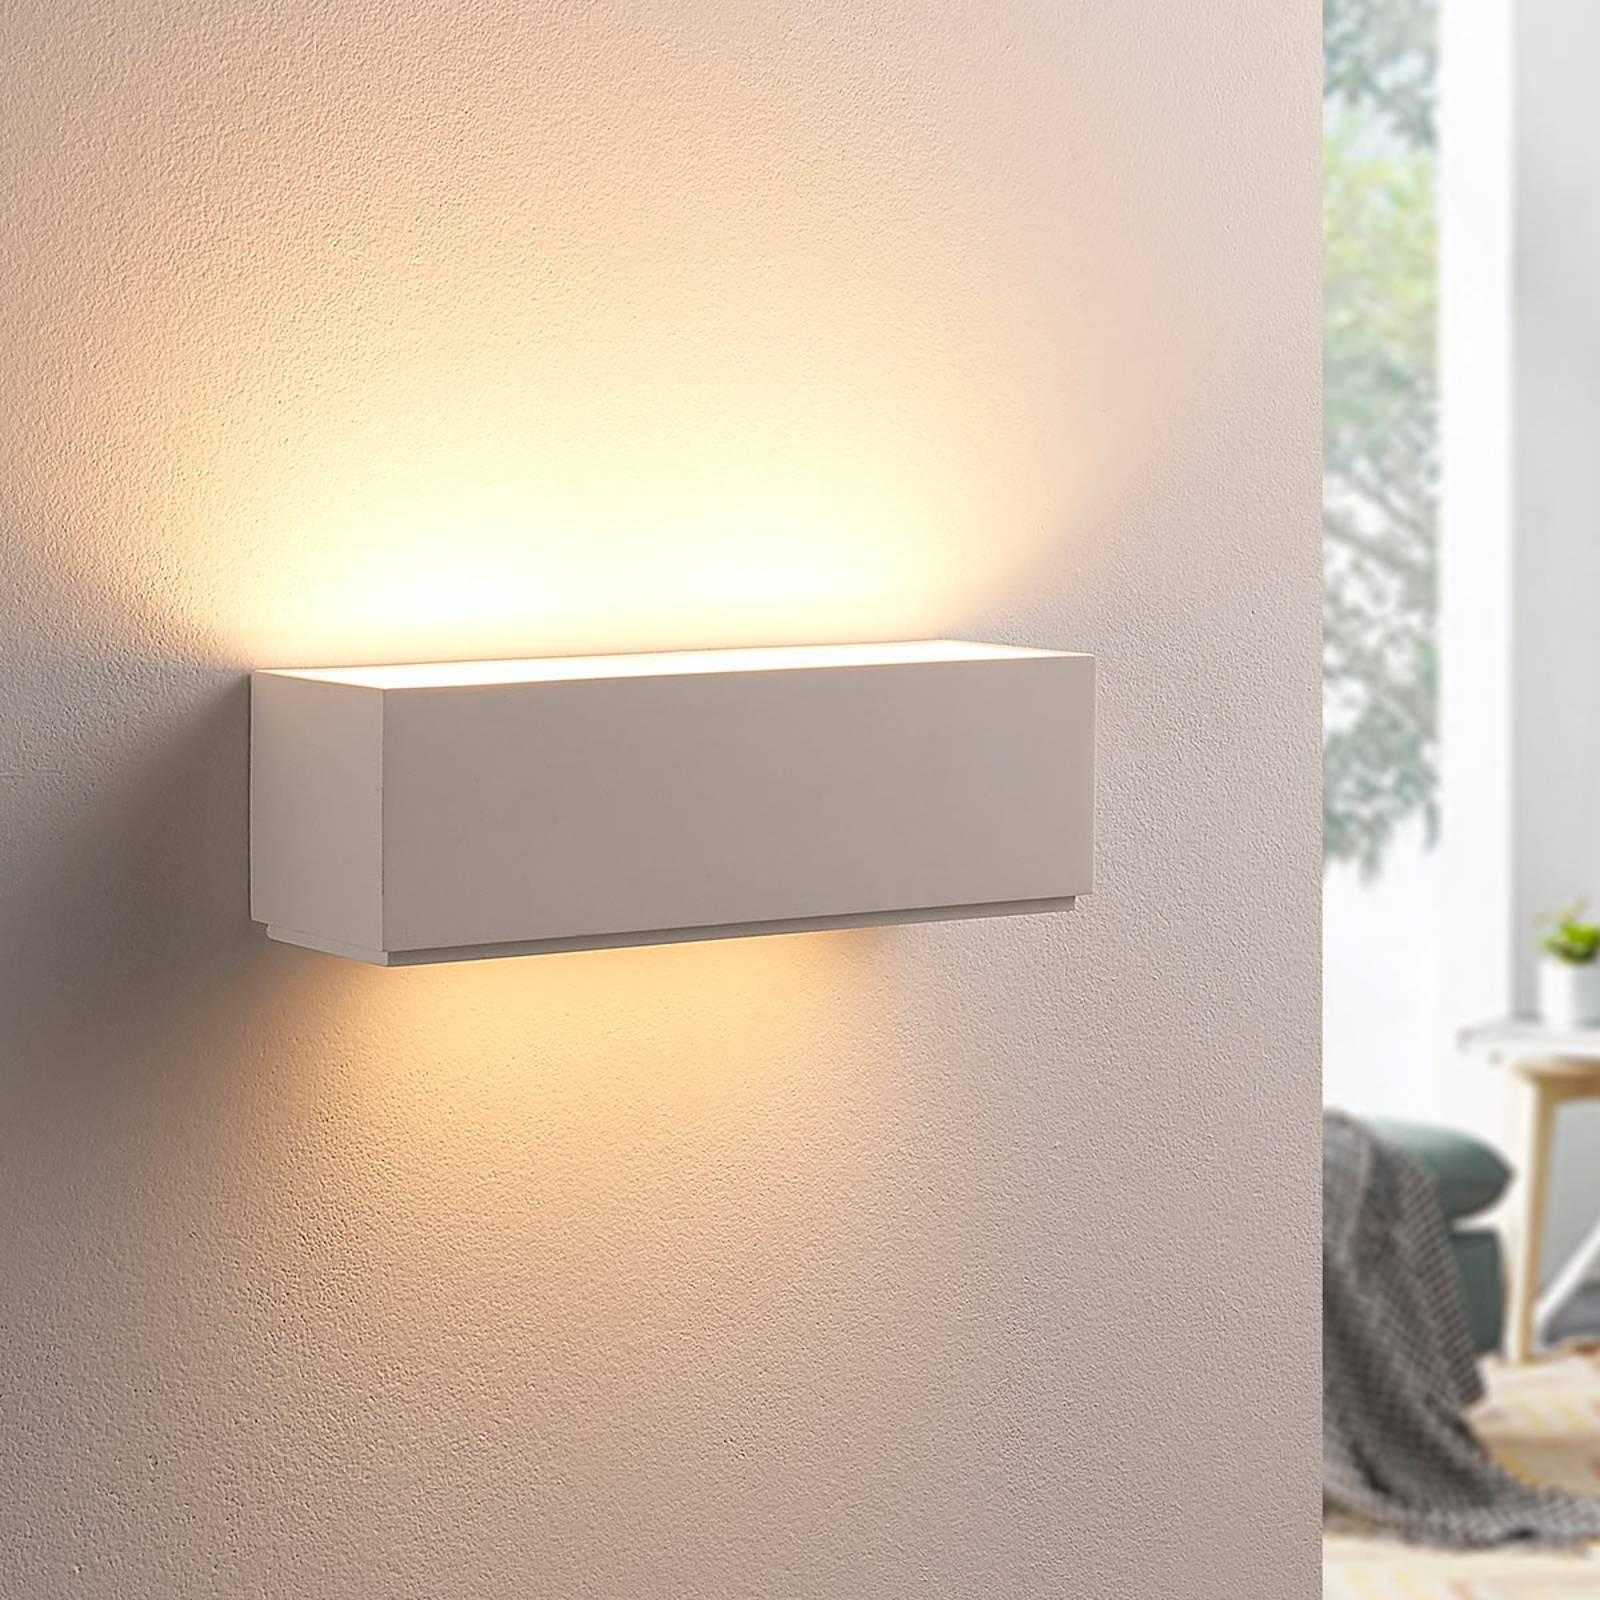 Simple plaster wall lamp Benno, G9 LED from Lindby